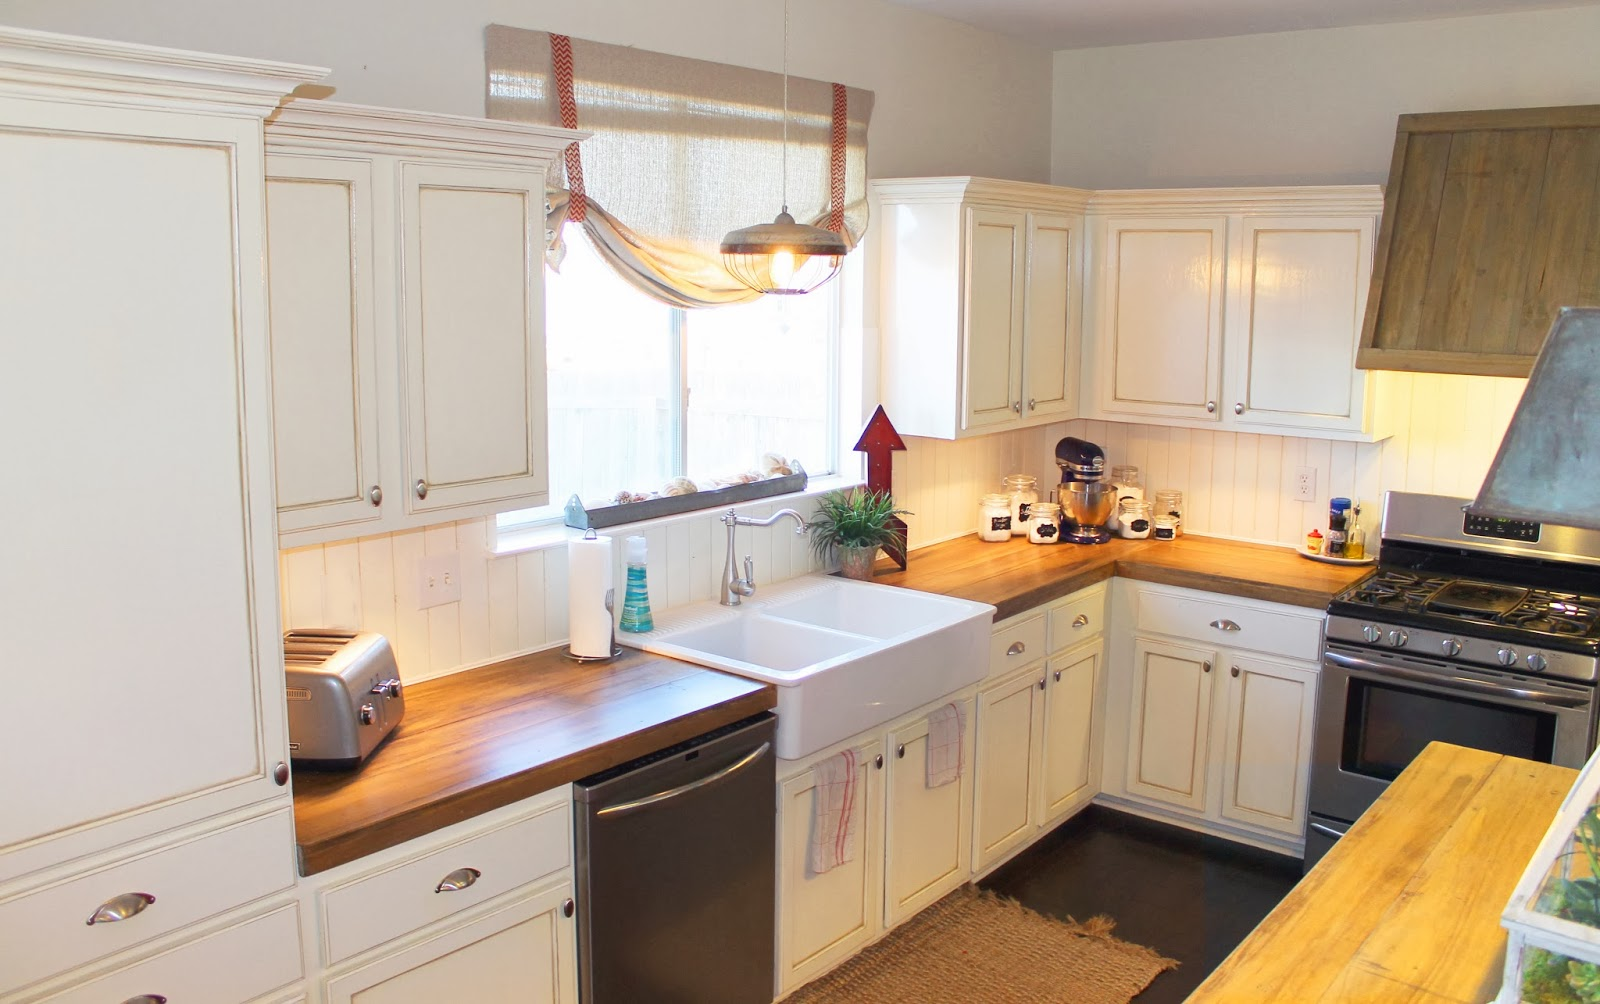 white kitchen countertops 4 piece appliance package charming and classy wooden